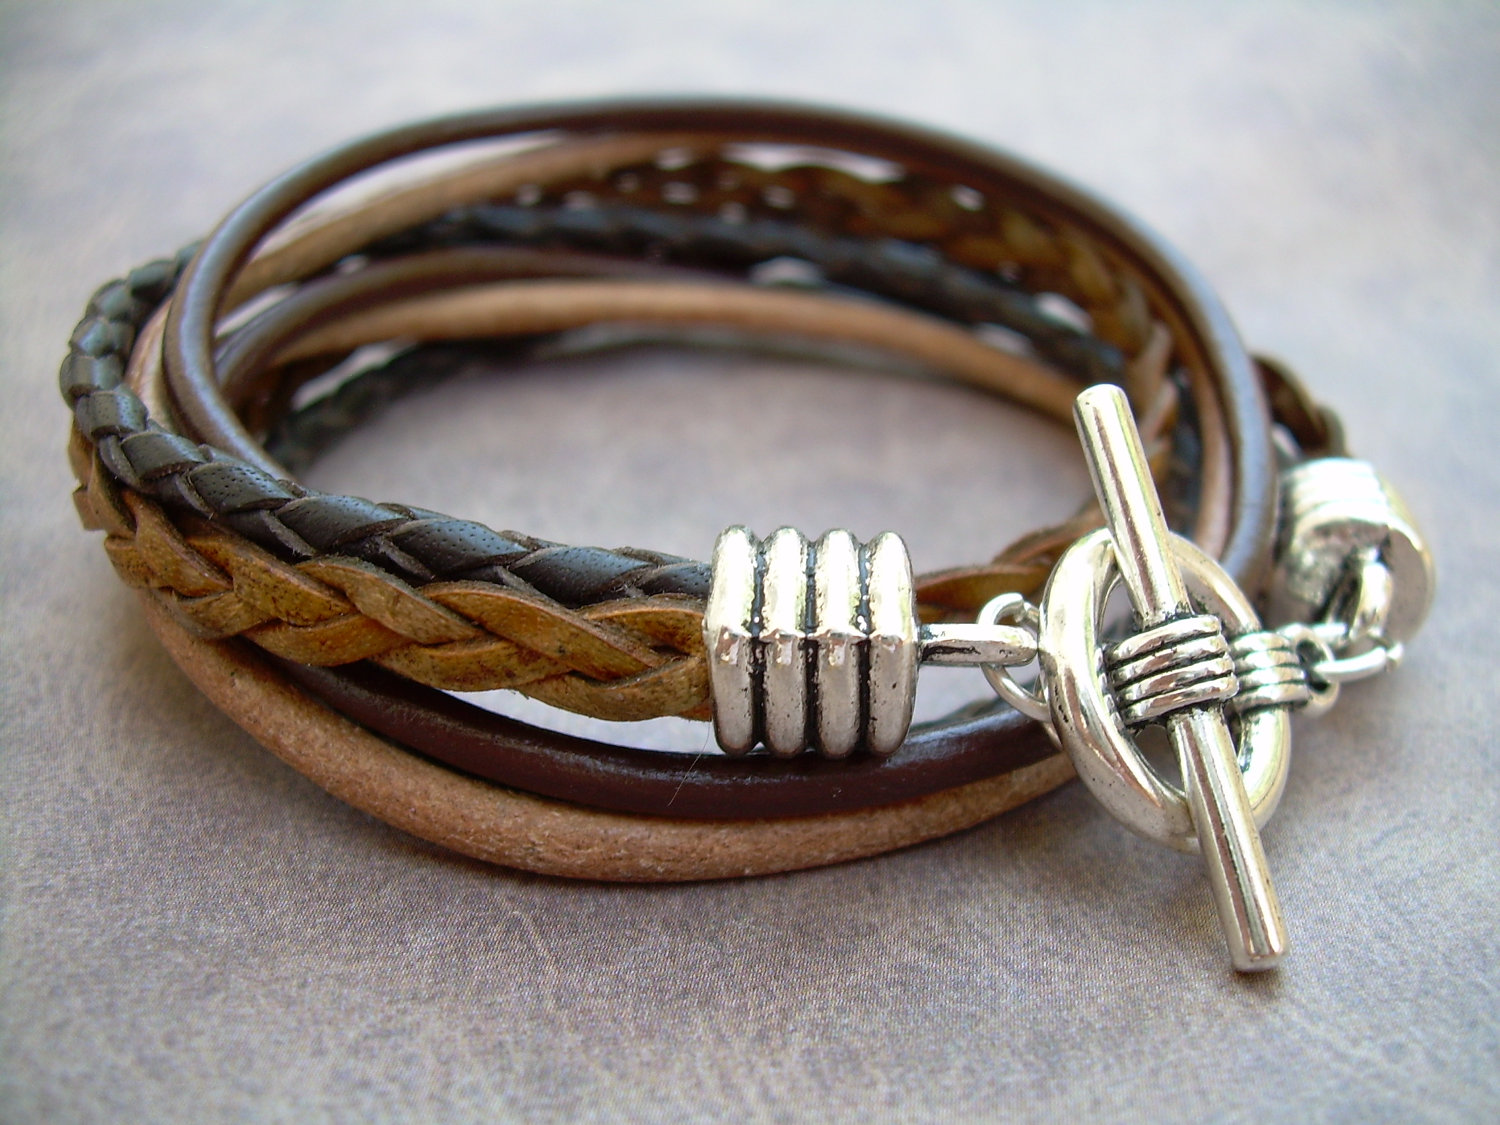 Mens Leather Bracelet Four Strand Double Wrap Urban Survival Gear